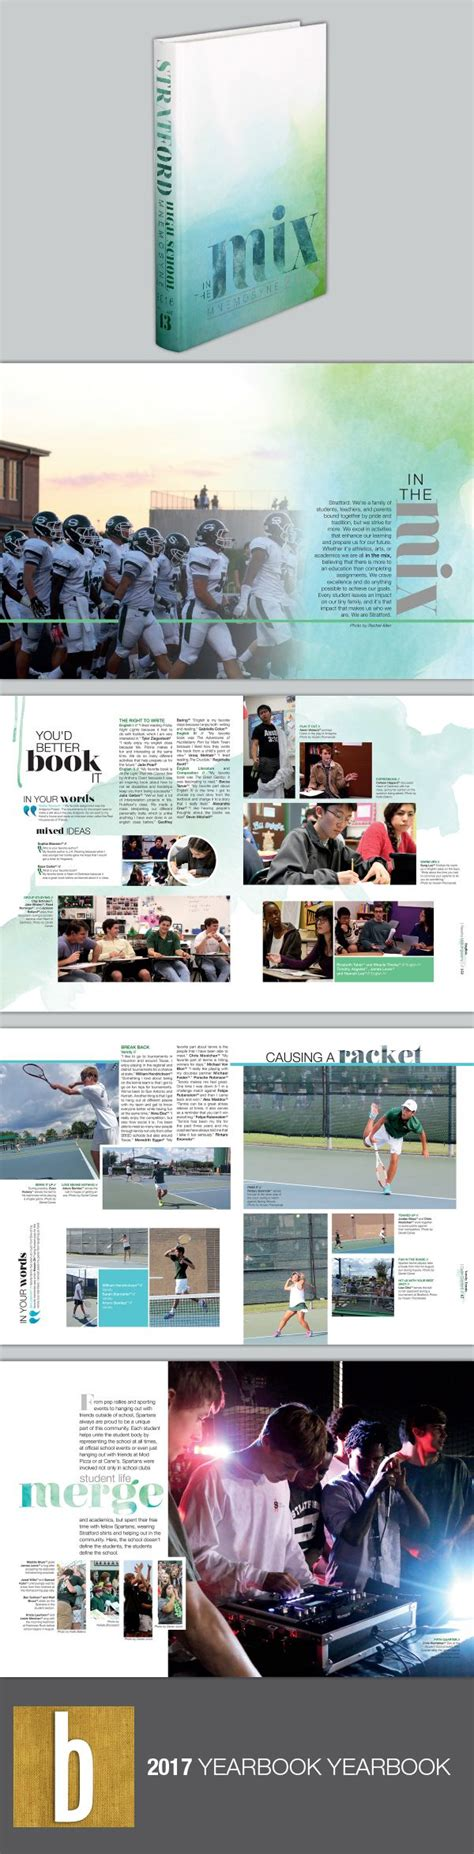 yearbook layout design rules the 25 best yearbook layouts ideas on pinterest